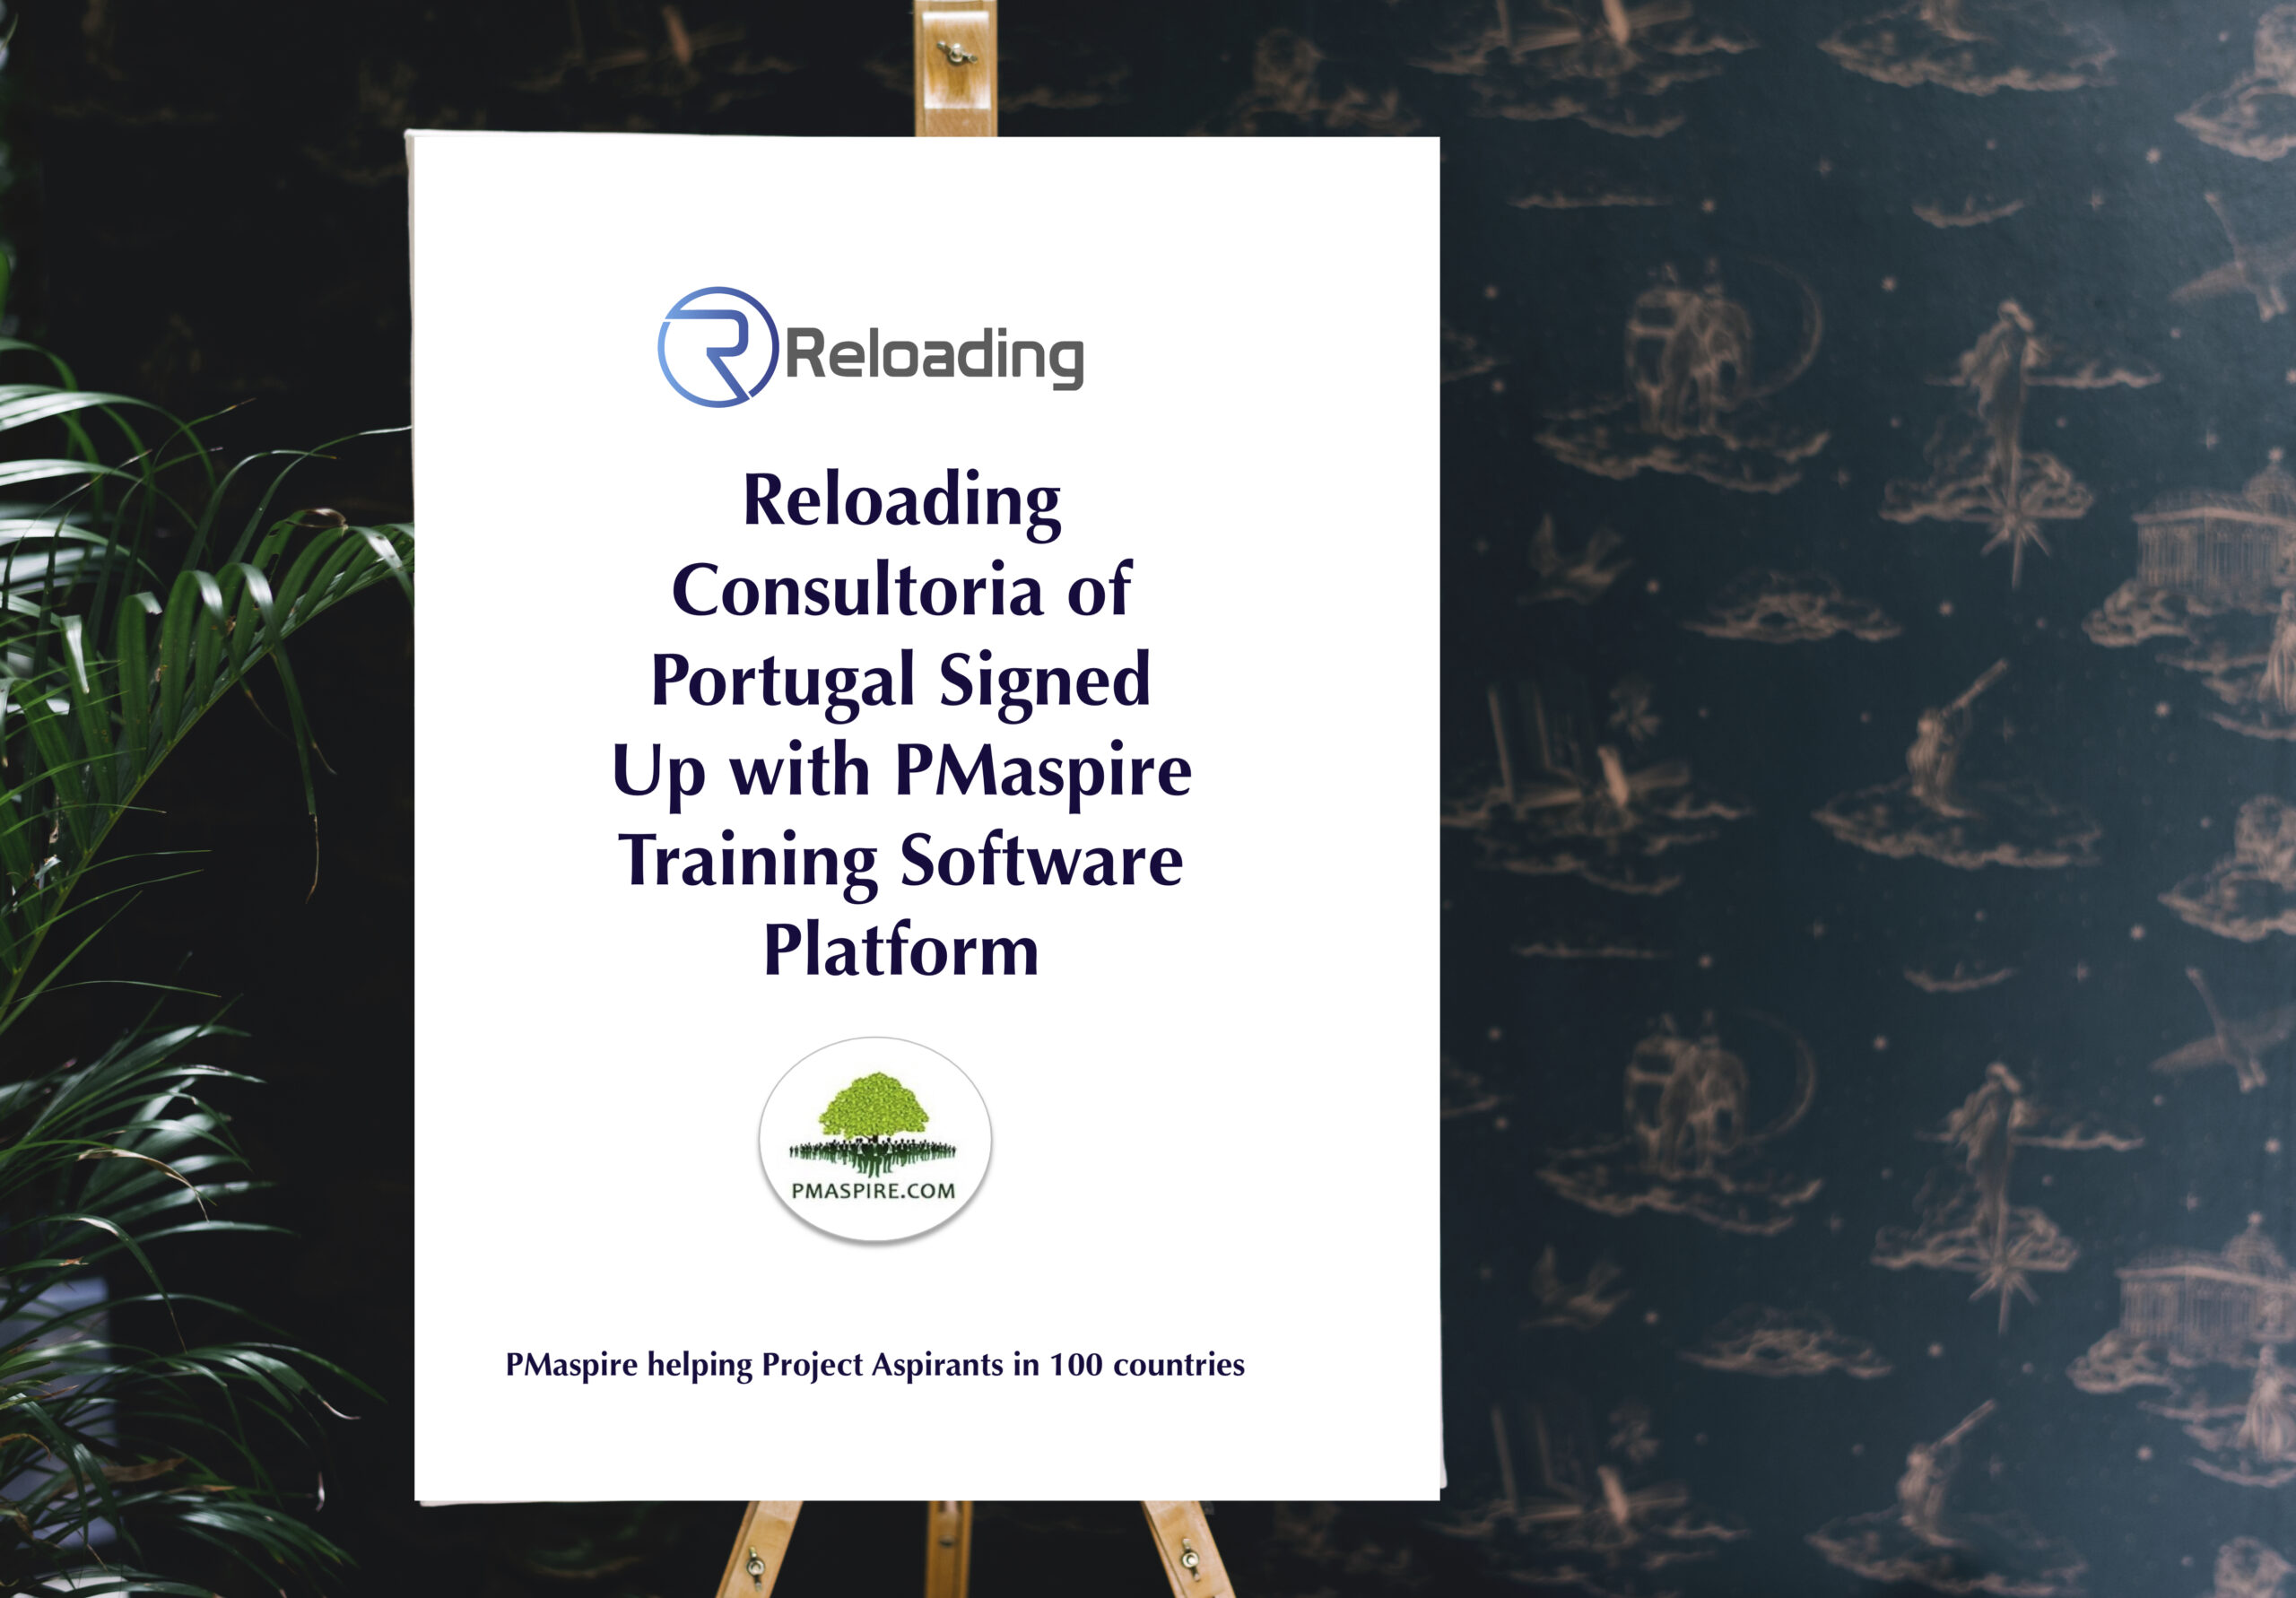 Reloading Consultoria from Lisbon, Portugal signed up with PMaspire Training Software